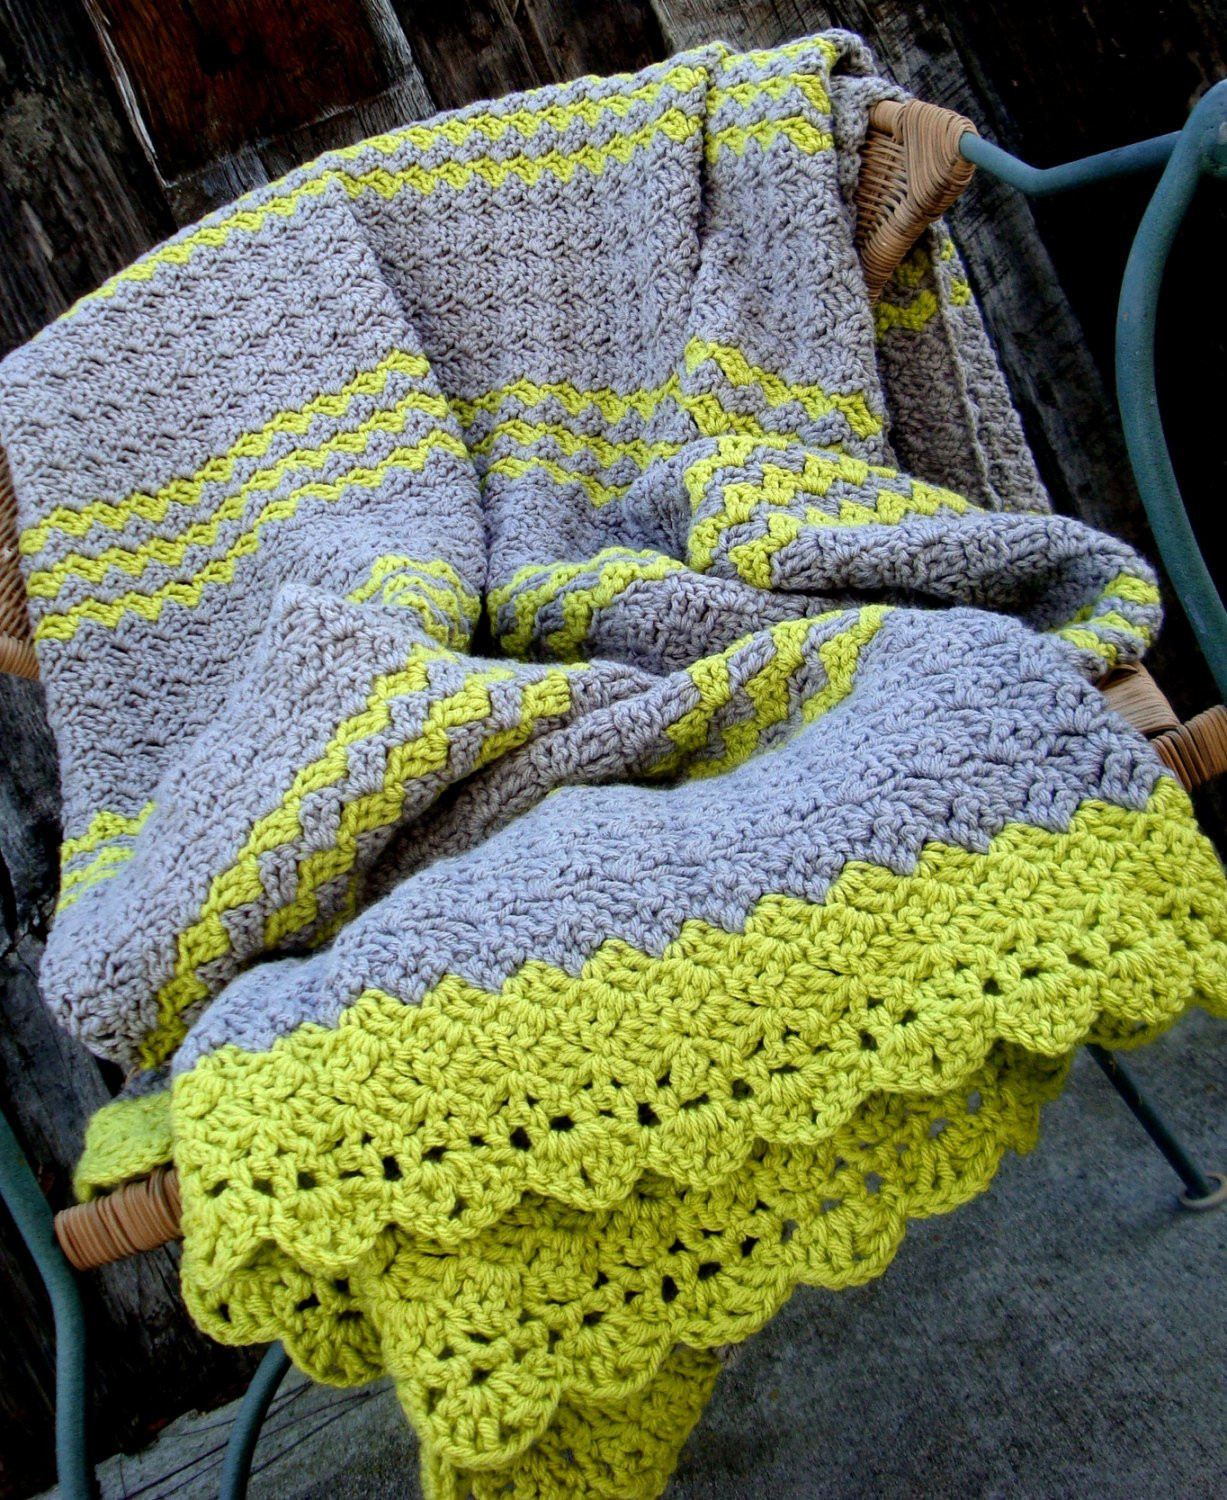 Afghan Blanket Awesome Afghan Blanket Crochet Gray Grey with Lime Green Lap Blanket Of Amazing 48 Photos Afghan Blanket